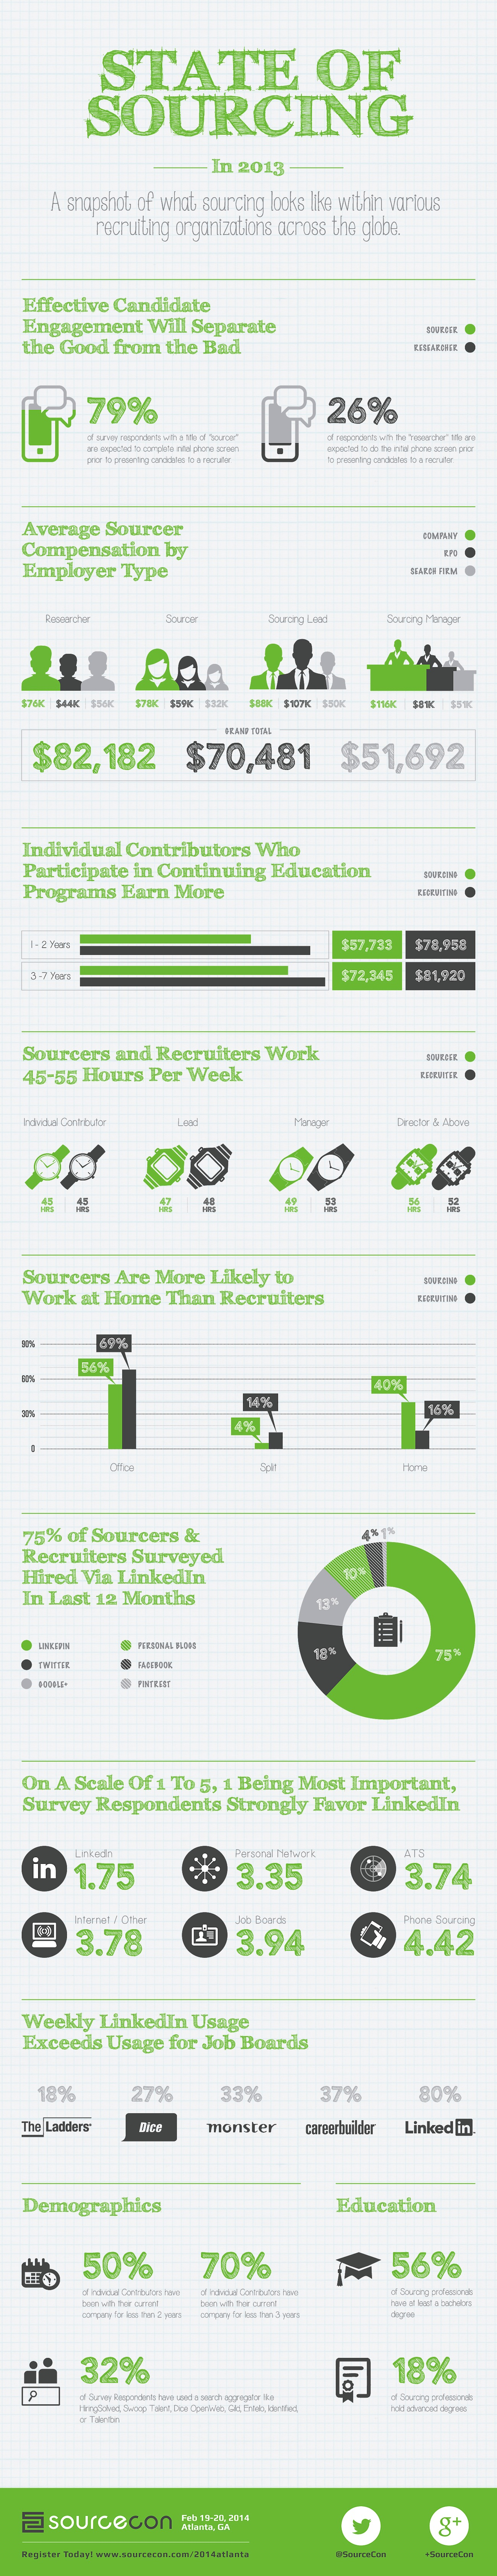 State Of Sourcing 2014